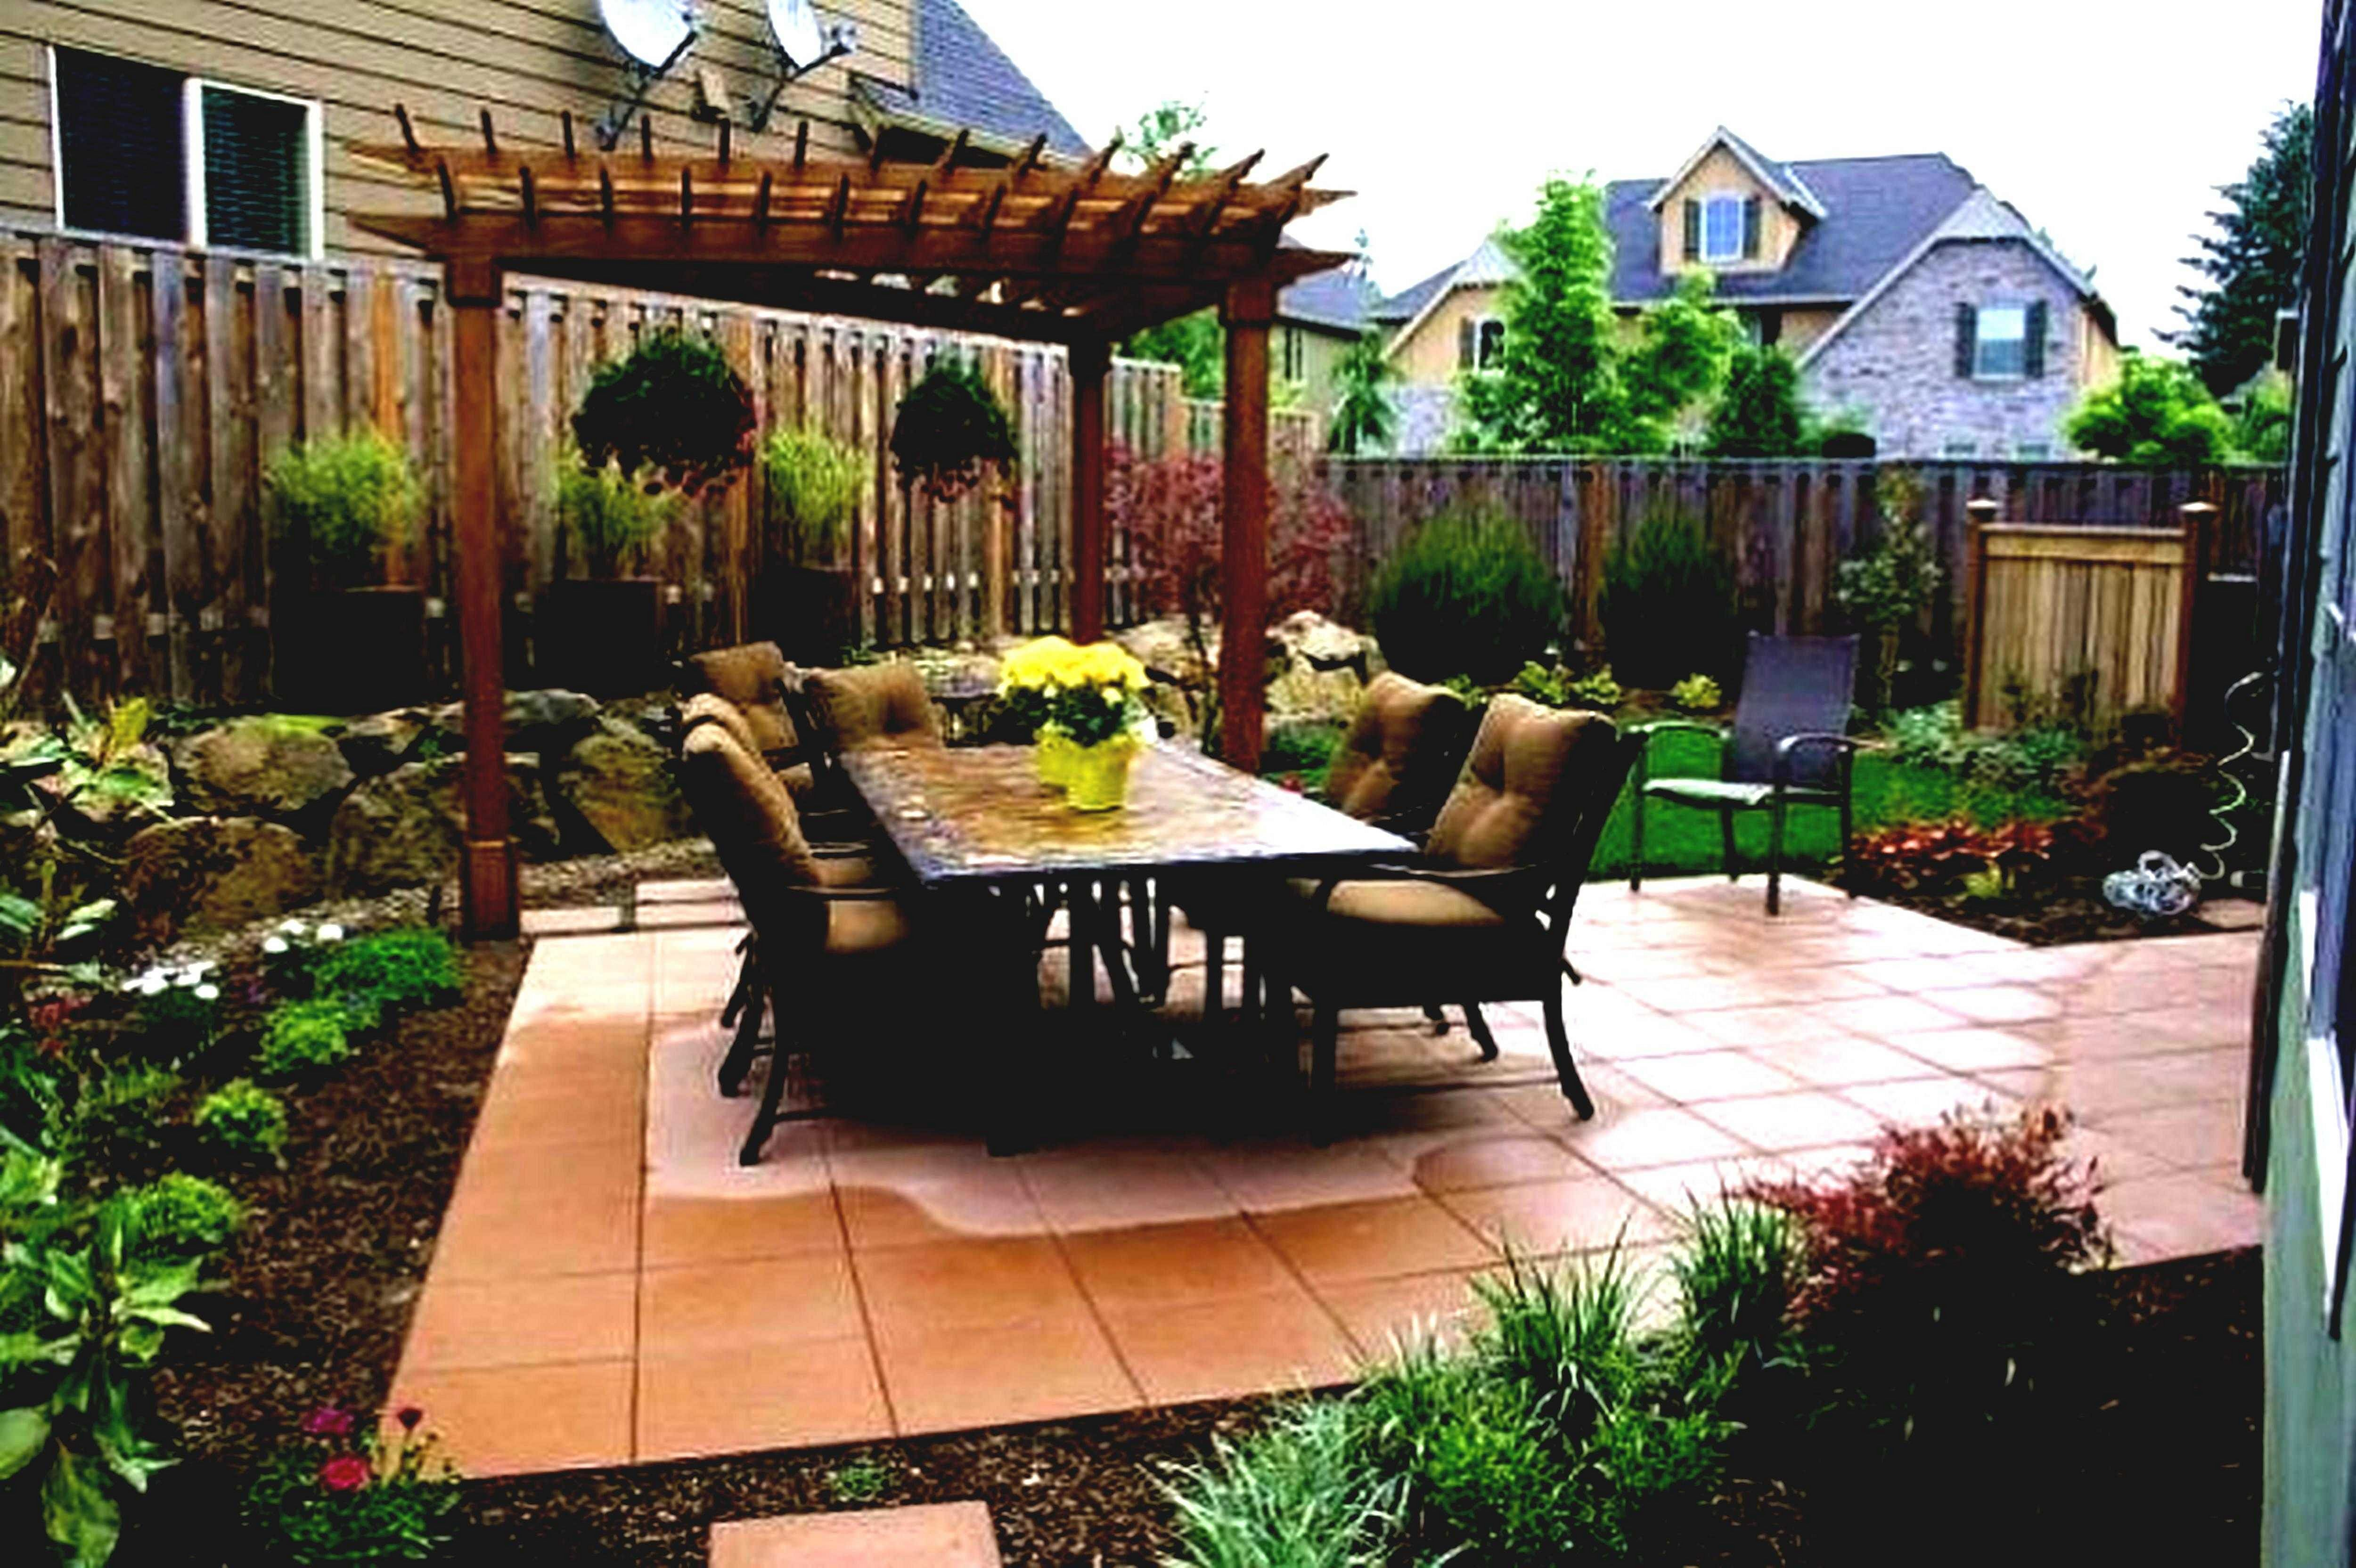 22 Easy And Cheap Landscaping Ideas For Home Outdoor ... on Modern Backyard Ideas On A Budget id=68687